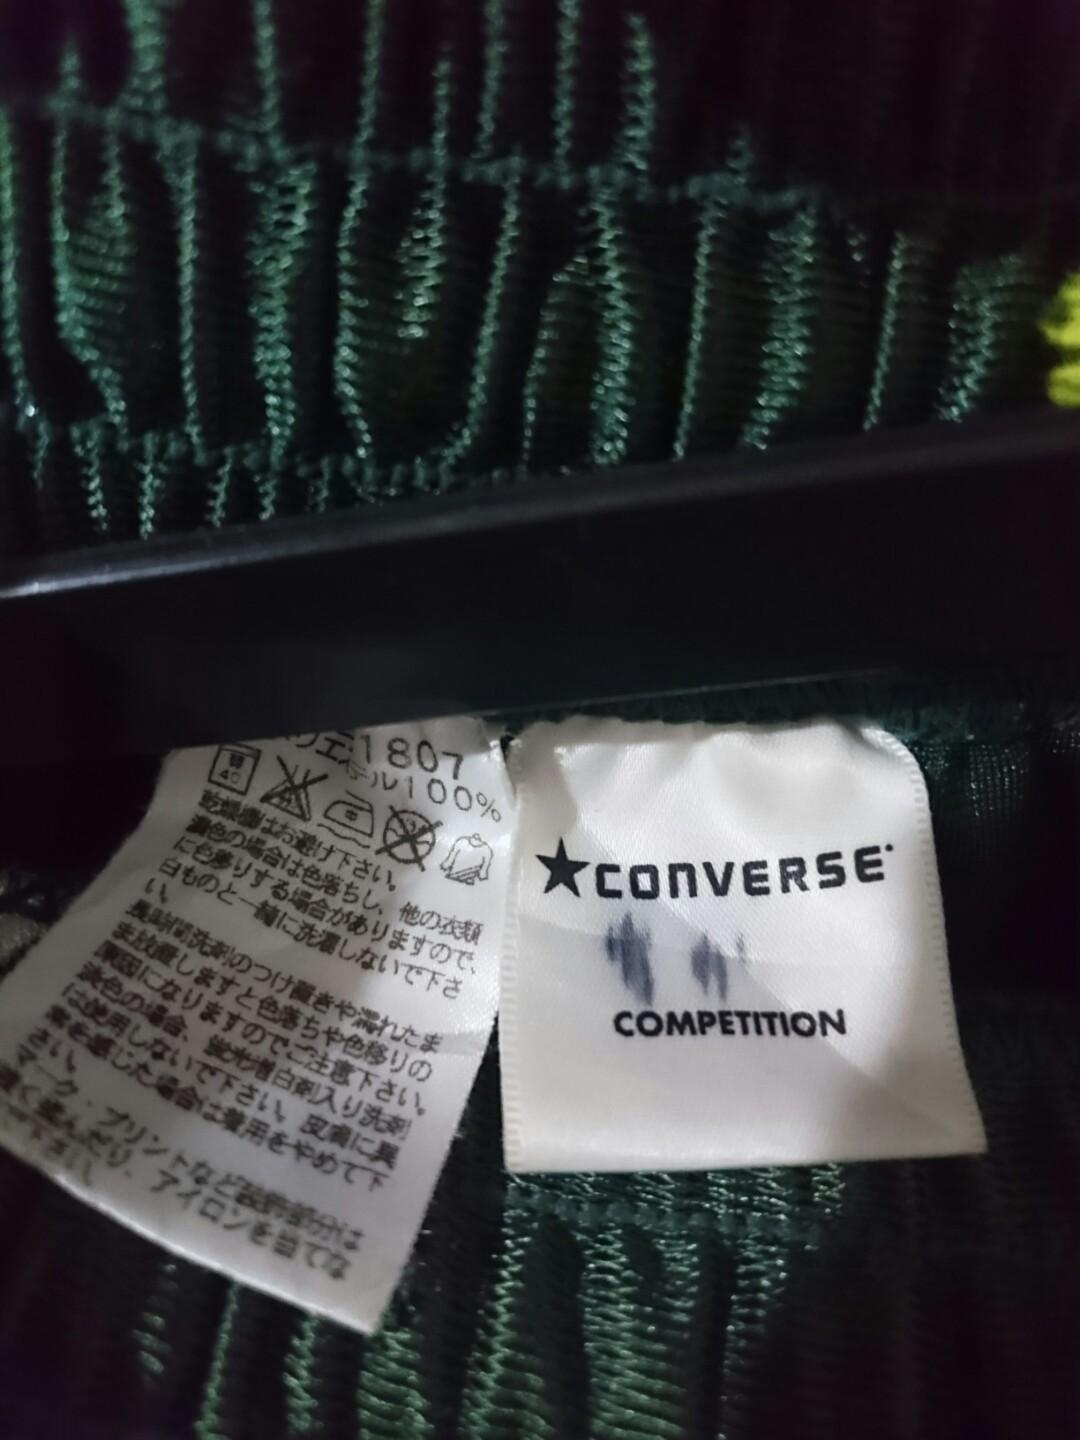 Converse competition basket ball